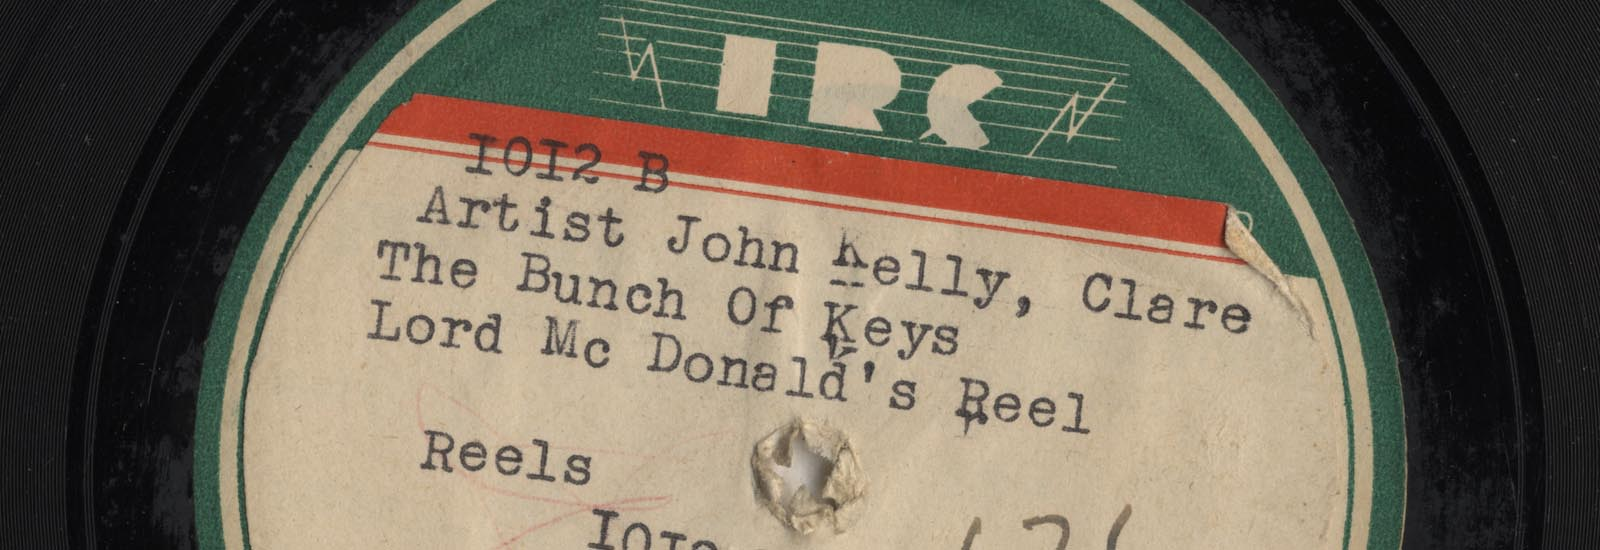 John Kelly: Irish Recording Company 78rpm Disc